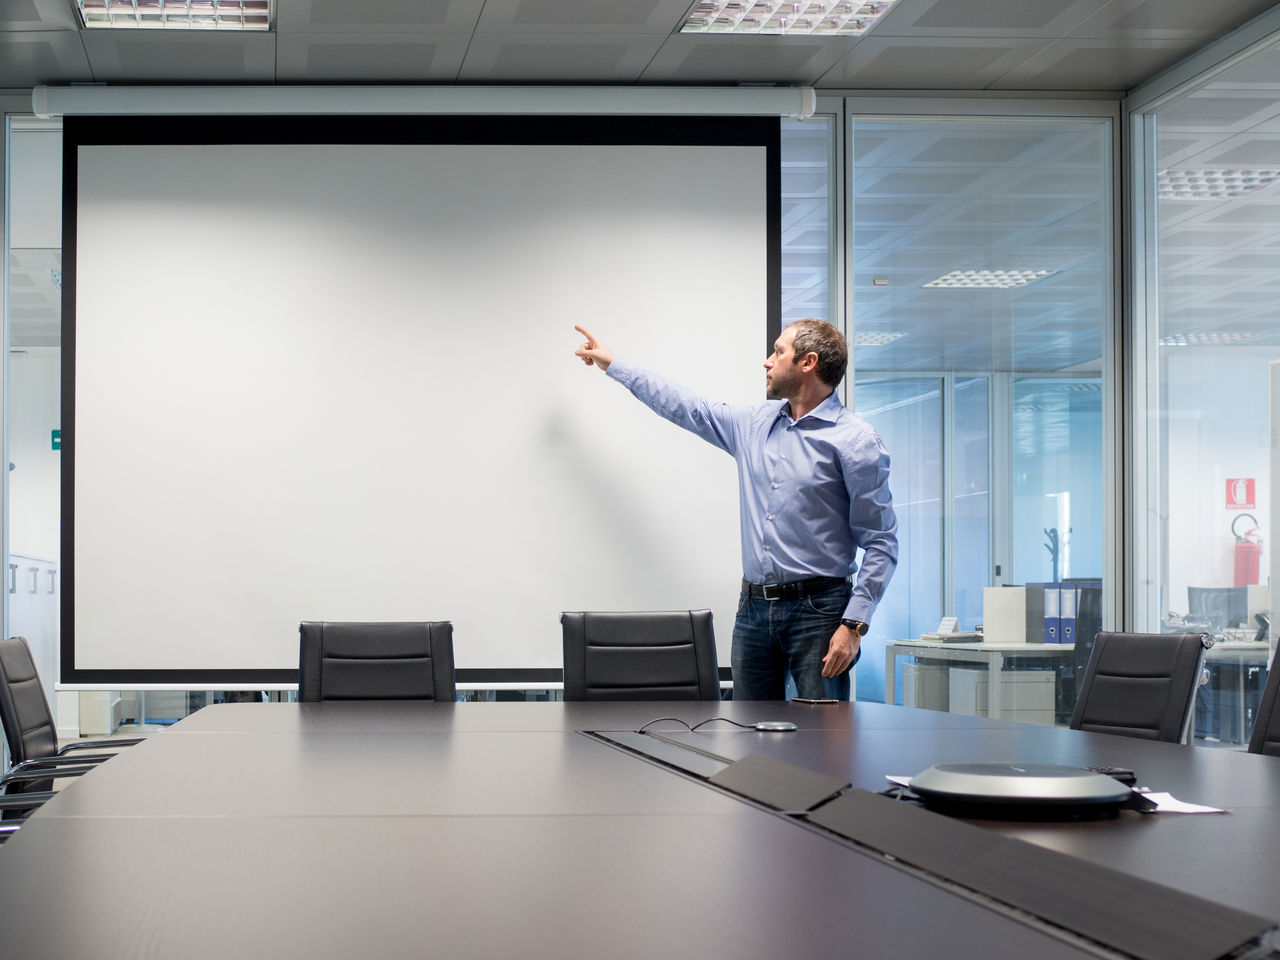 Businessman Pointing Towards Projection Screen While Standing In Board Room At Office